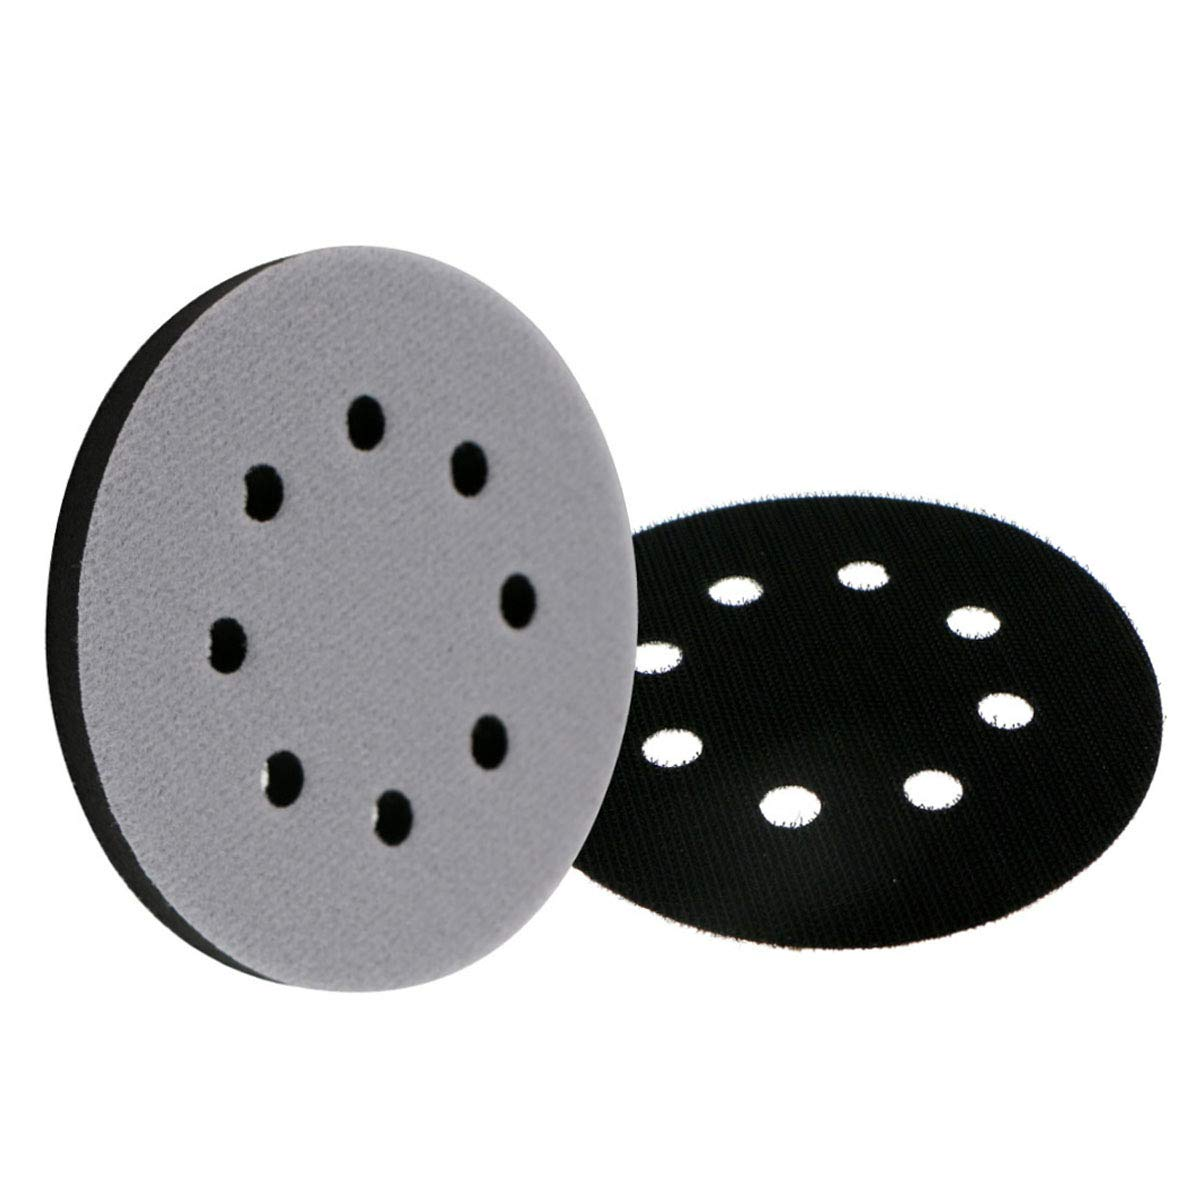 5 Inch Interface Pad 8 Holes Soft Sponge Sanding Disc Backing Pads with Interface Pad Protection Disc Hook and Loop Attachment Power Tools Accessories 125mm by VIBRATITE by VIBRATITE